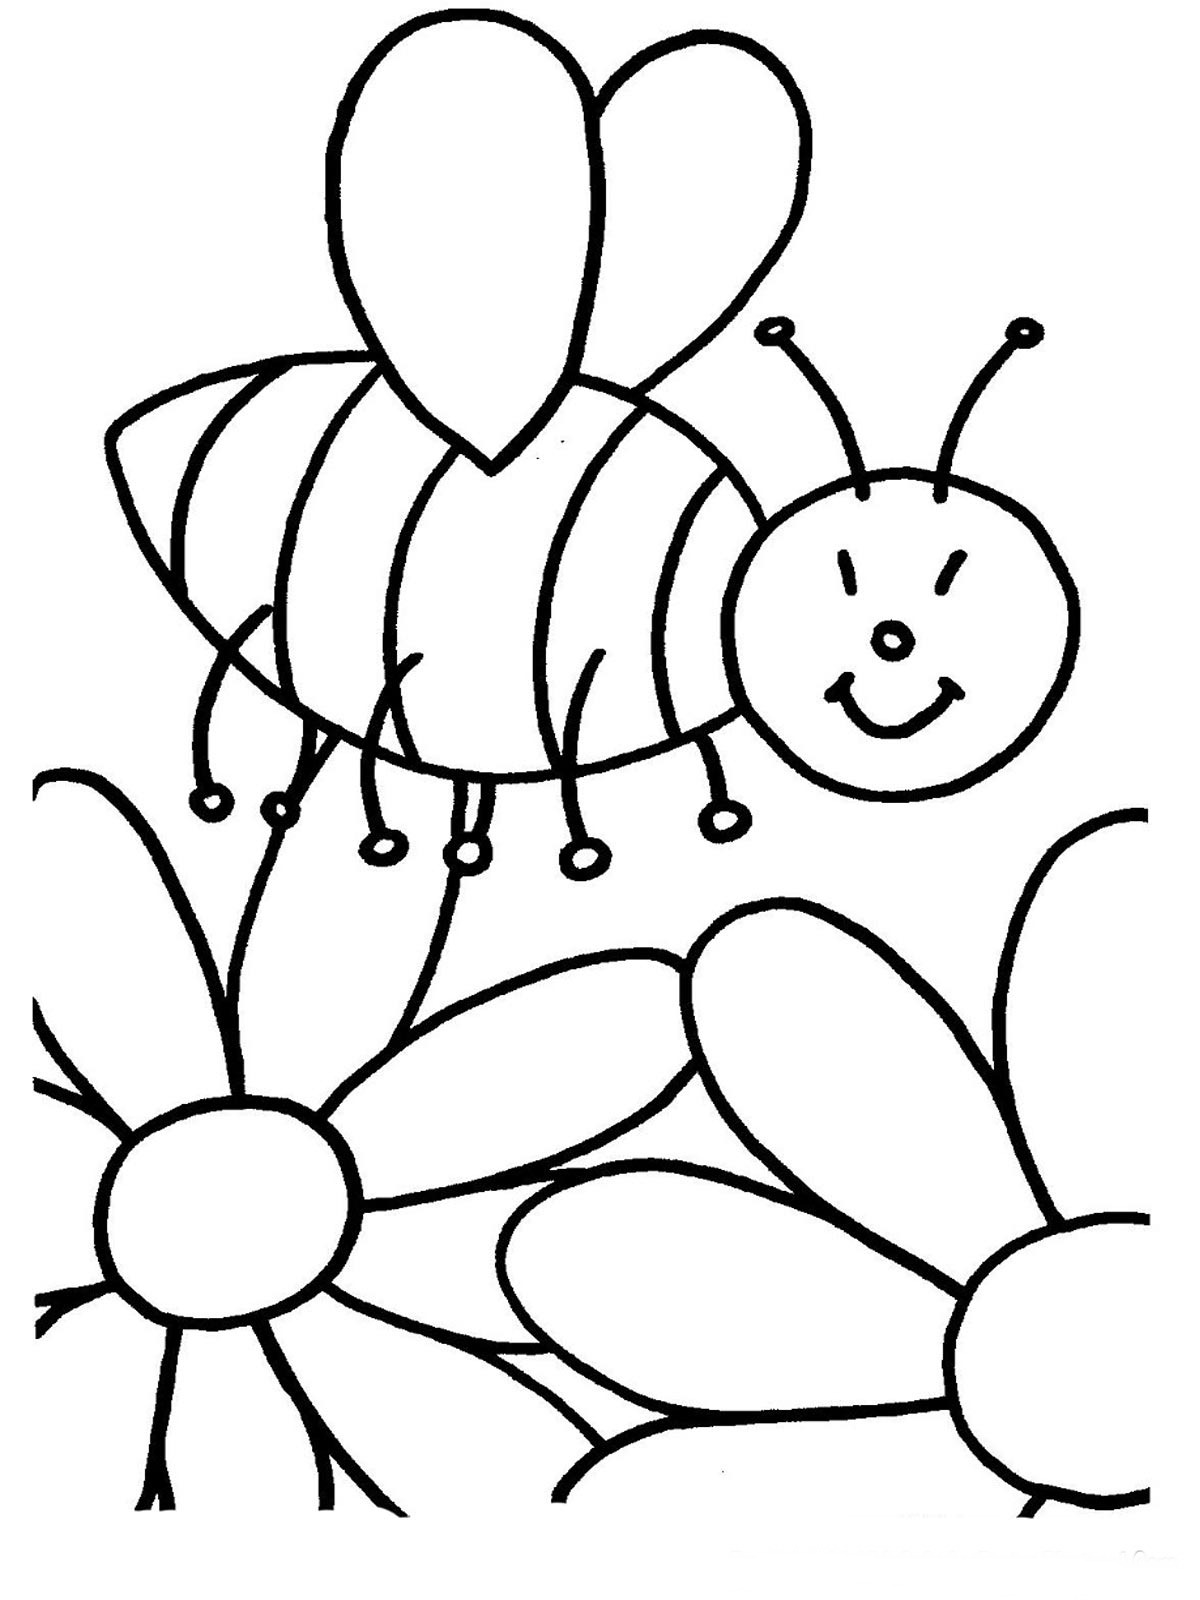 blank color page - bees coloring pages realistic realistic coloring pages